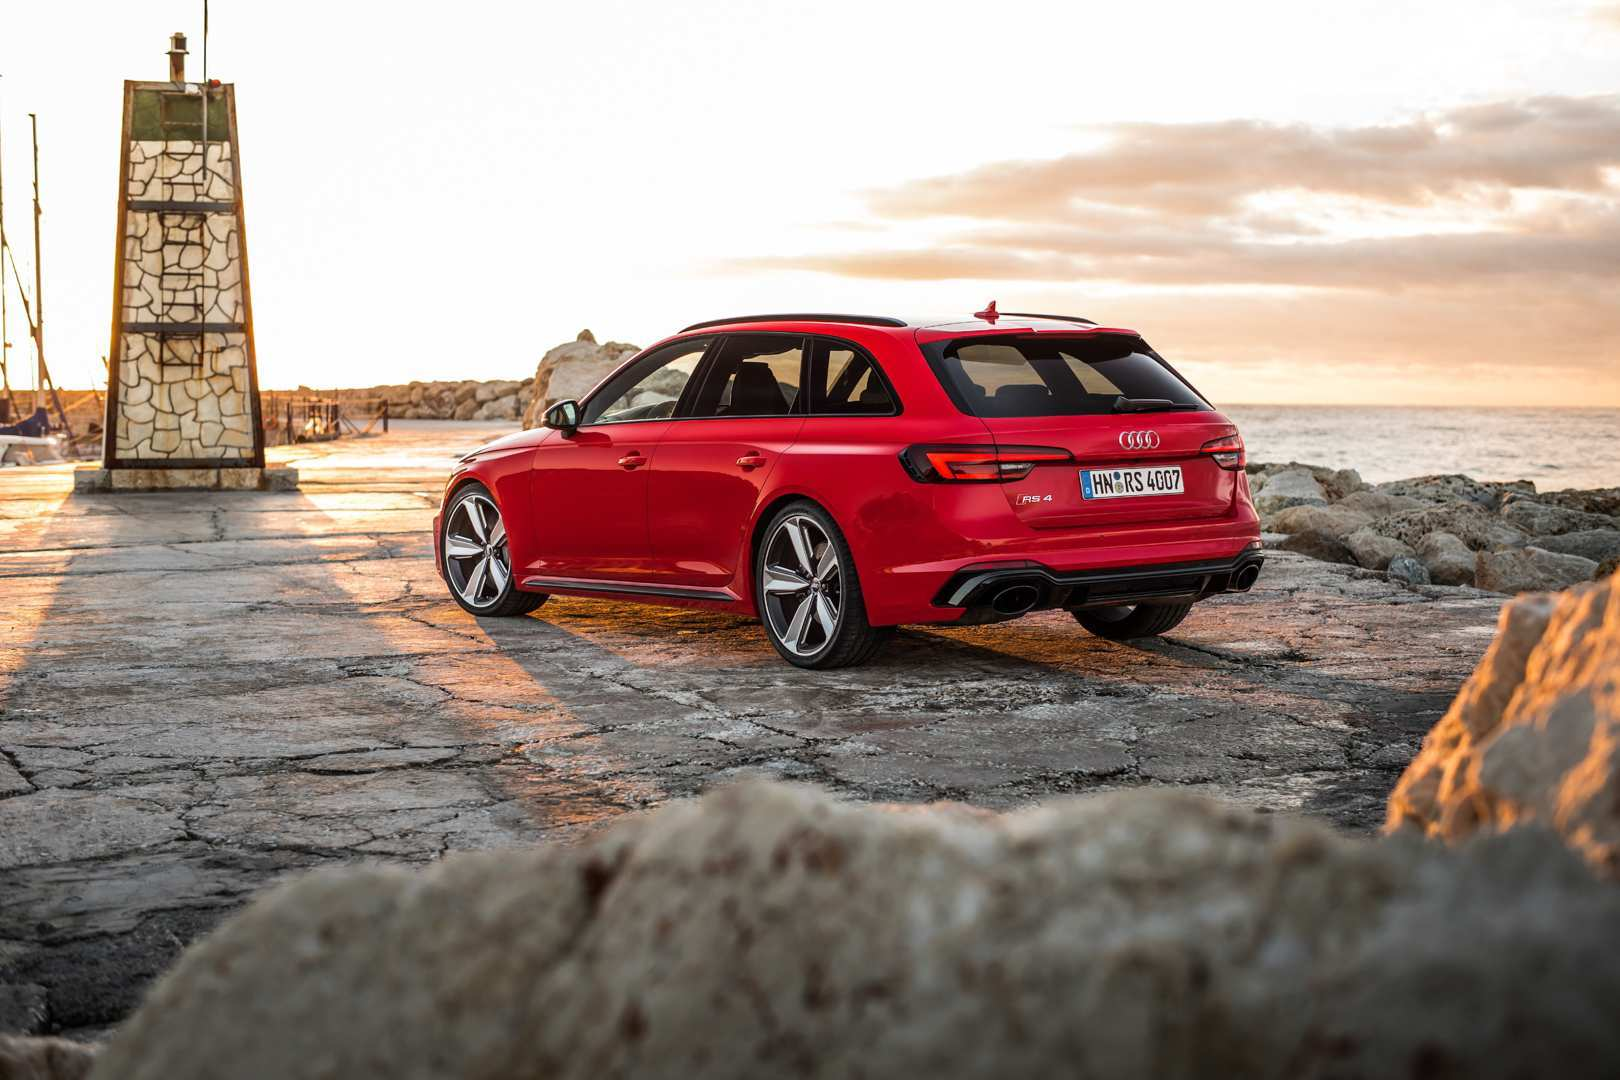 36 All New Audi Rs4 2020 Wallpaper for Audi Rs4 2020